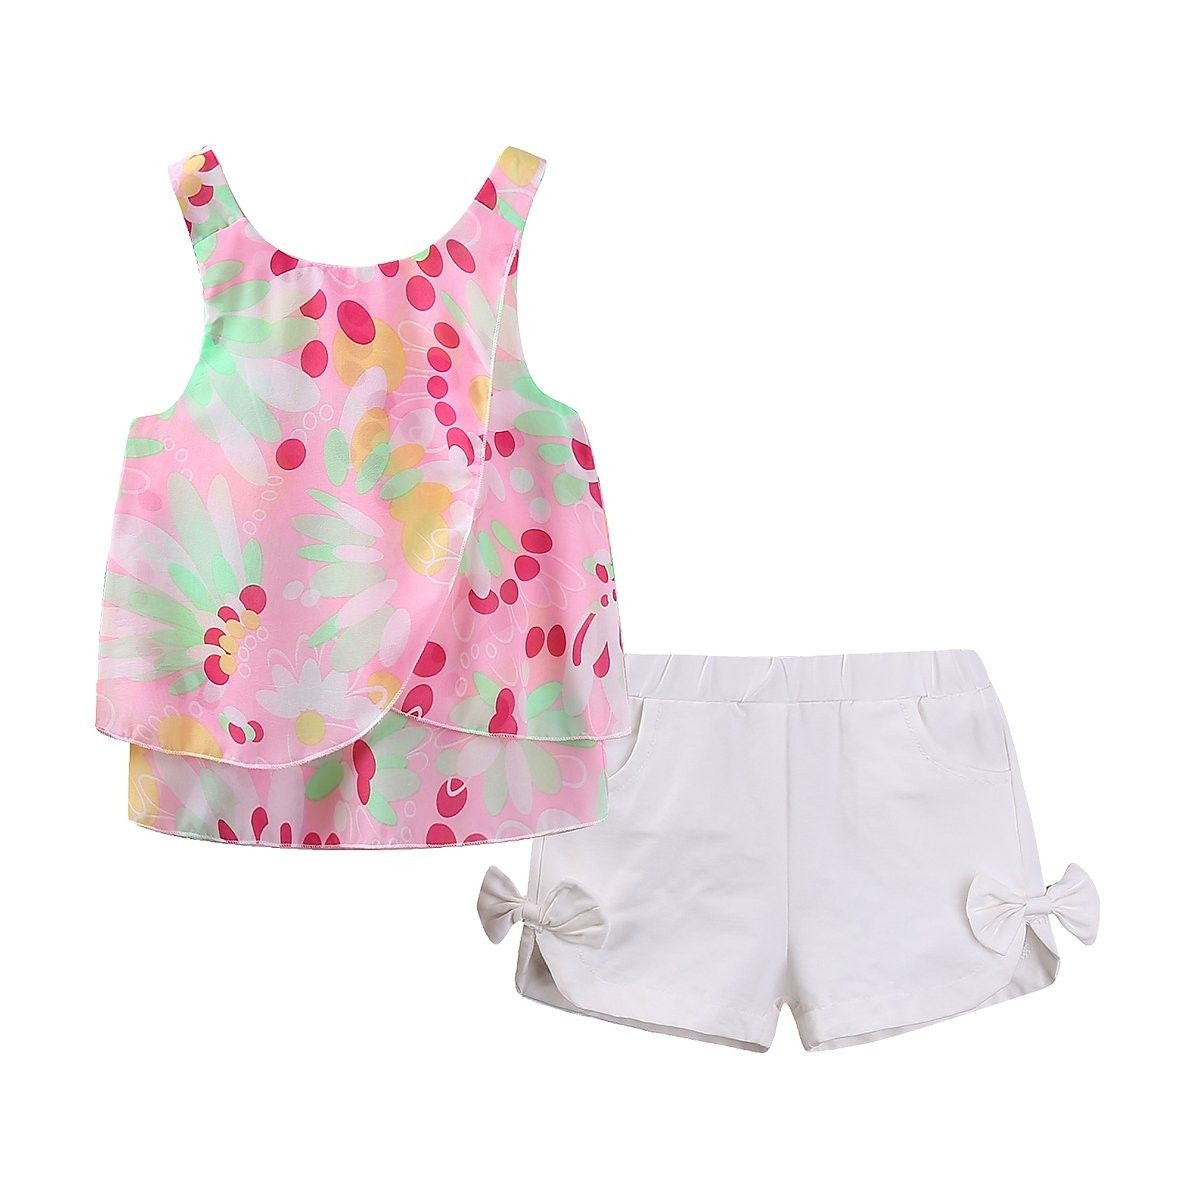 Little Girl Outfits Floral Chiffon Top and Short Set - CY12EUDGZHV | Girl  outfits, Little girl outfits, Girls summer outfits